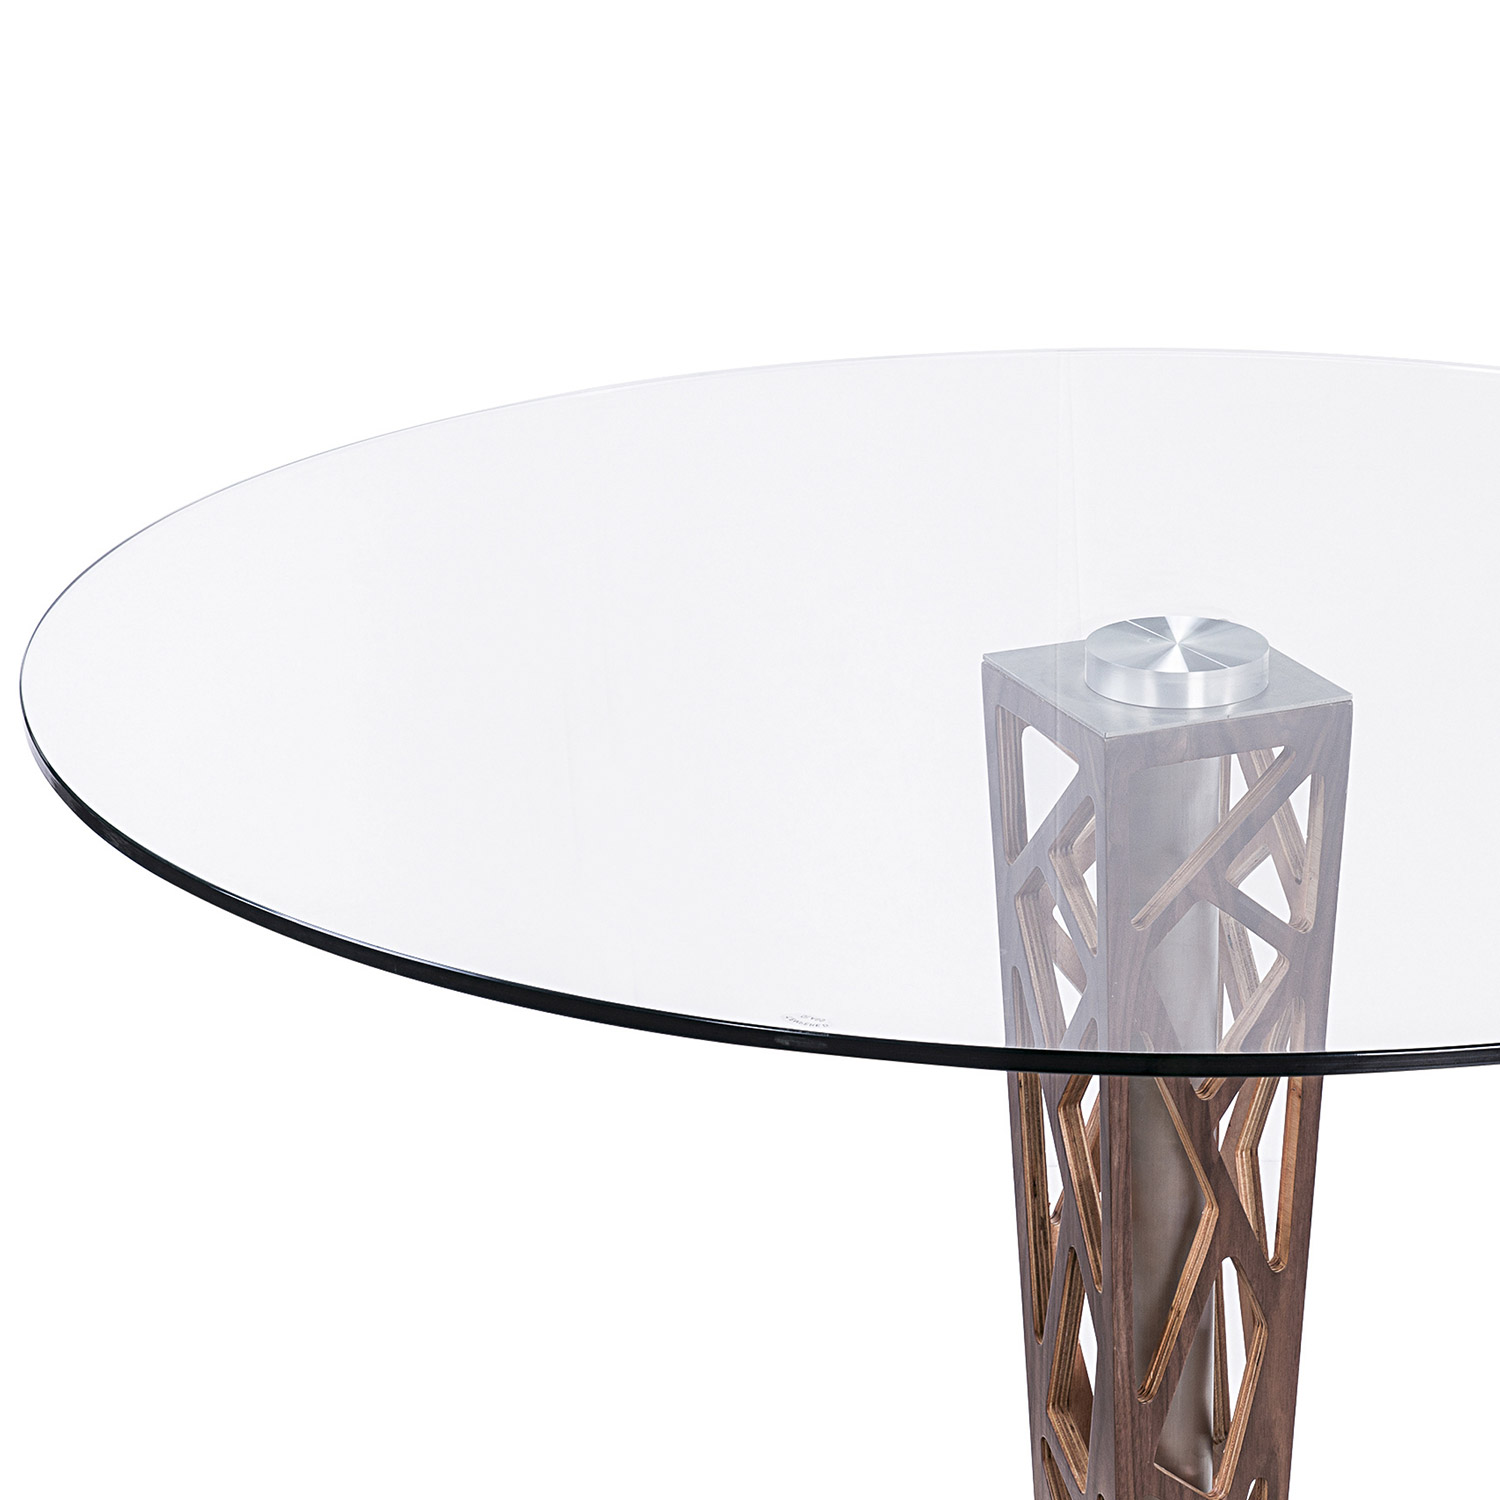 Armen Living Crystal 48-inch Round Dining Table - Clear